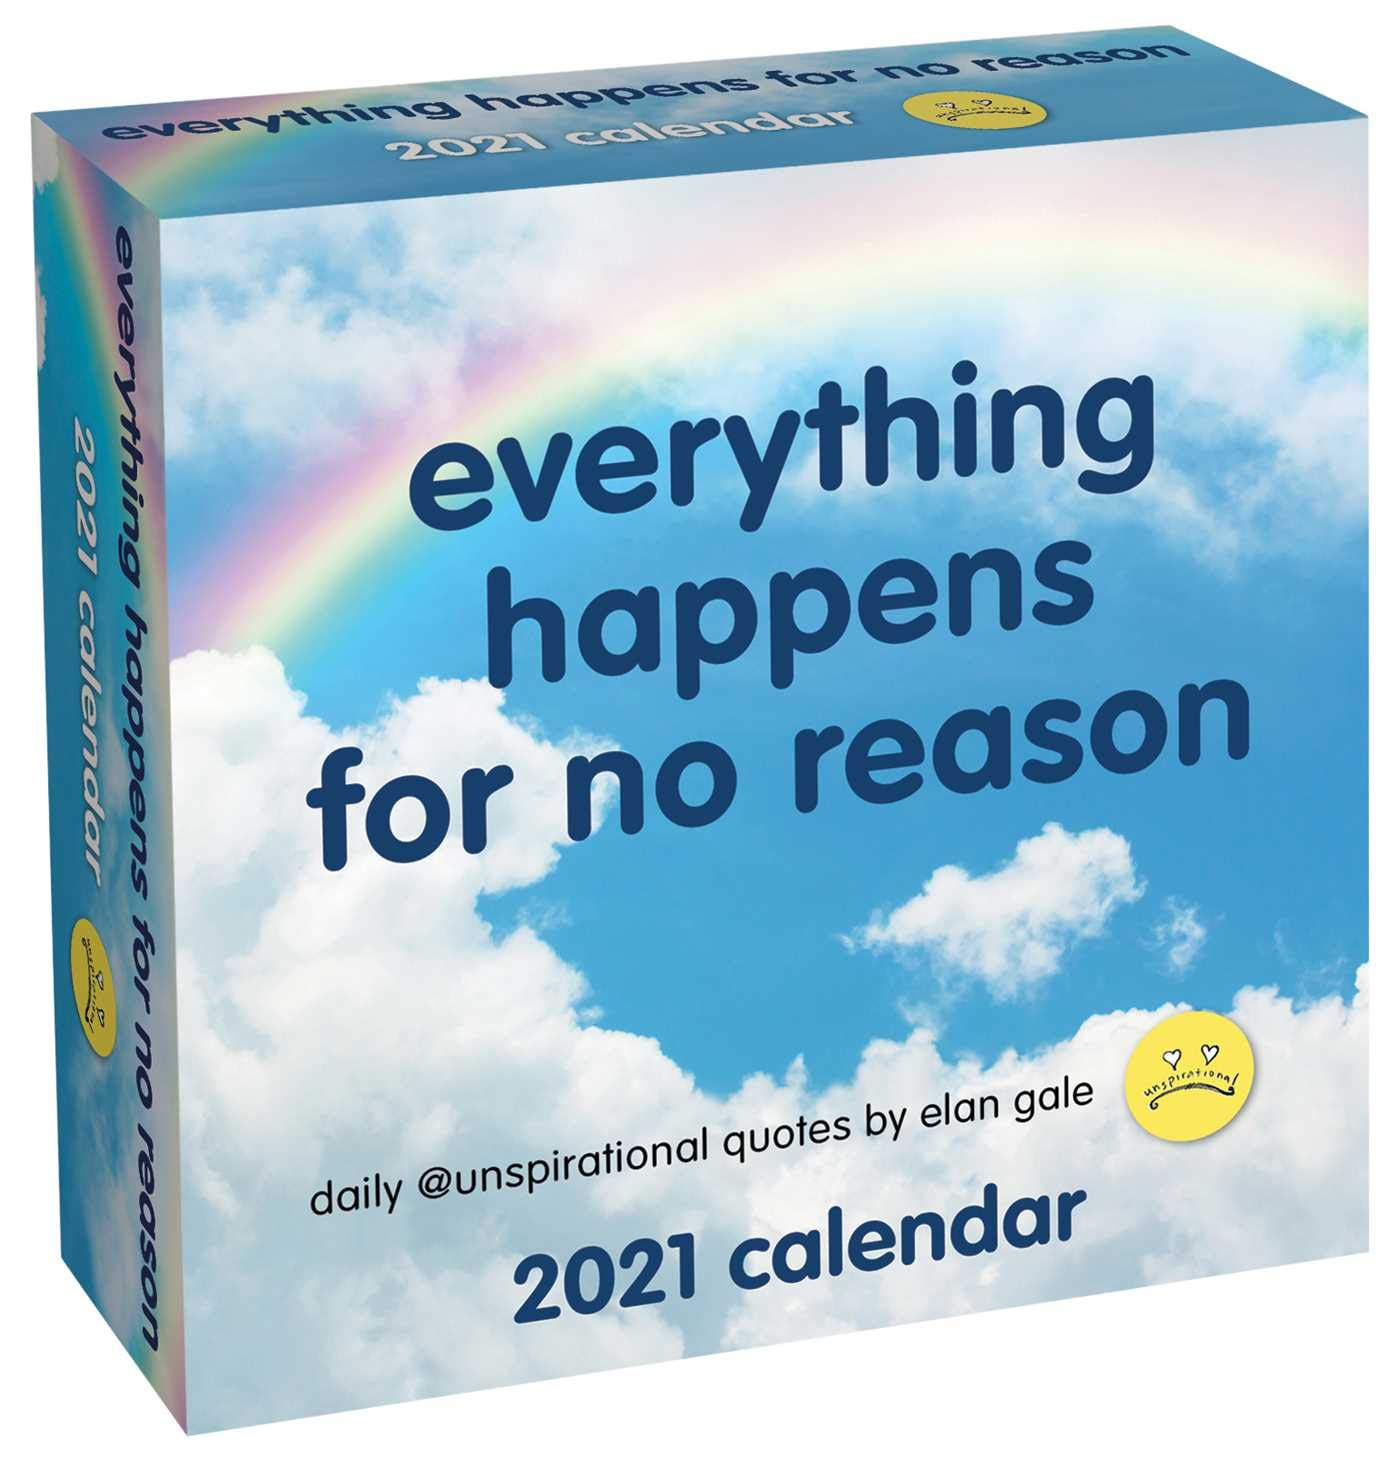 Unspirational 2021 Day-to-Day Calendar: everything happens for no reason:  Gale, Elan: 0050837434578: Amazon.com: Books